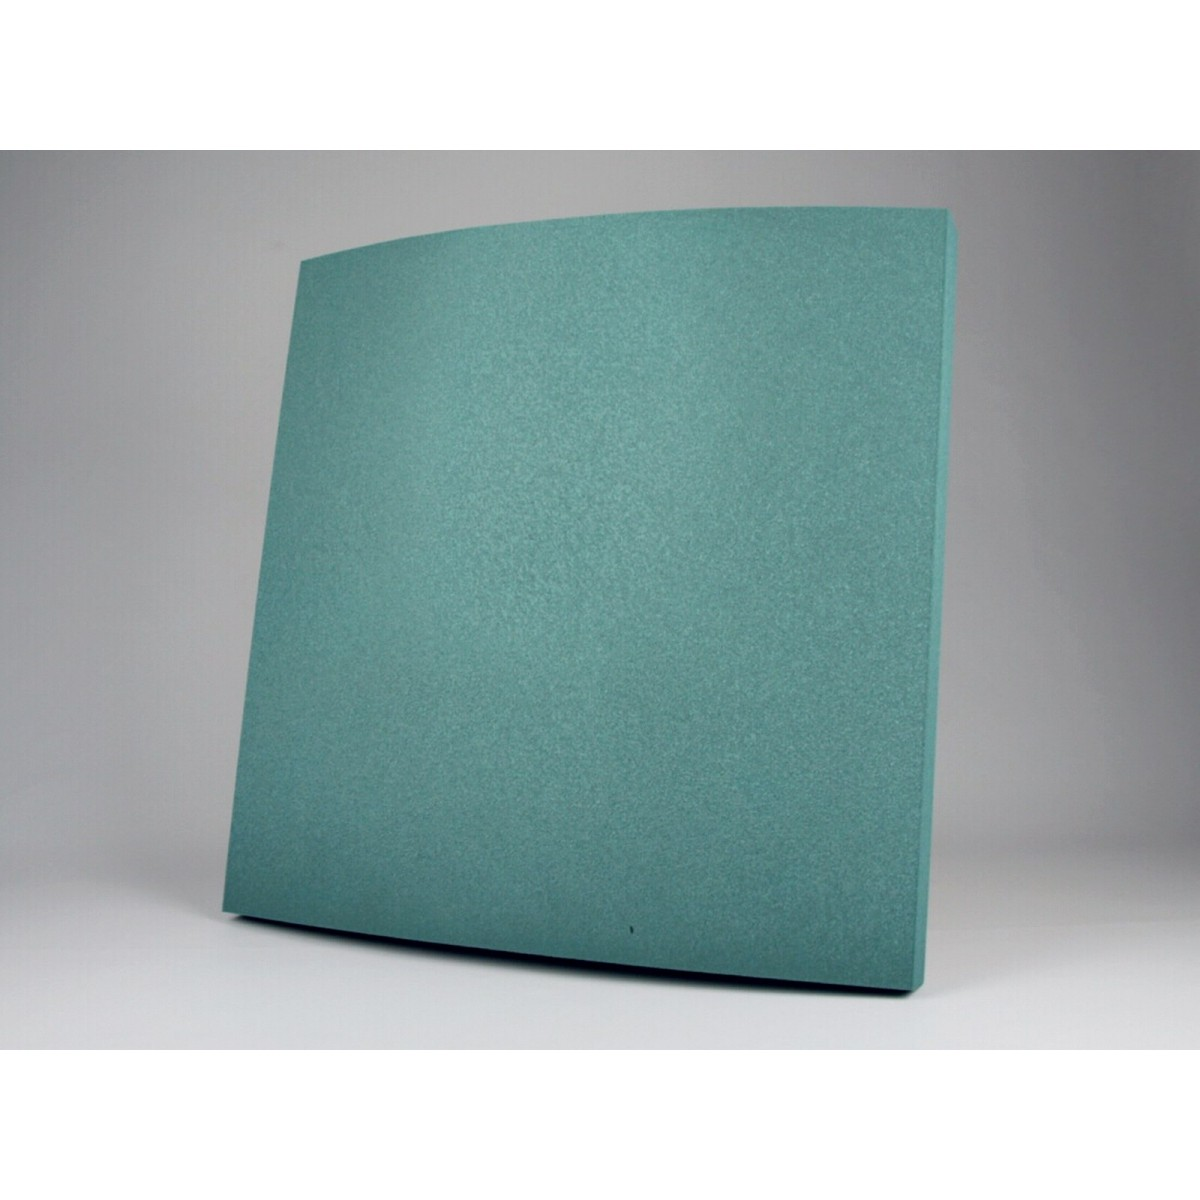 eliacoustic curve pure turquoise